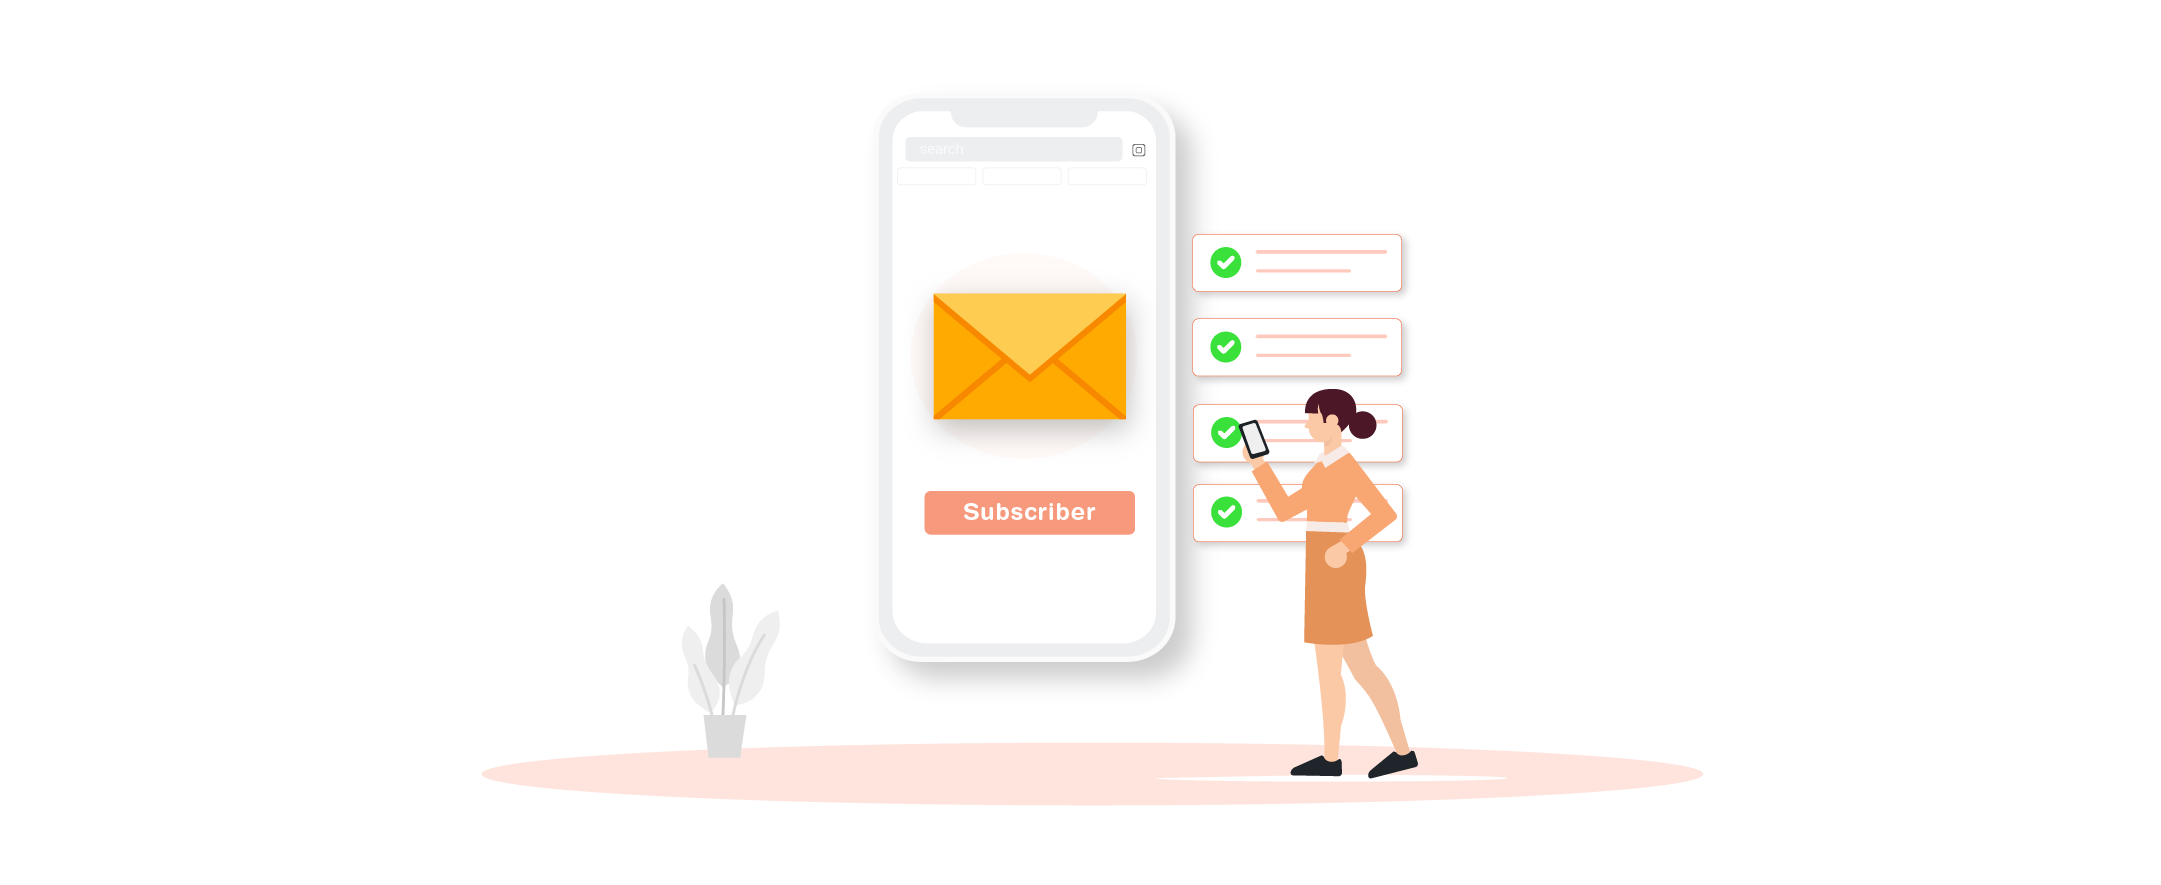 10 Proven Ways to Convert Your Mobile Visitors Into Email Subscribers